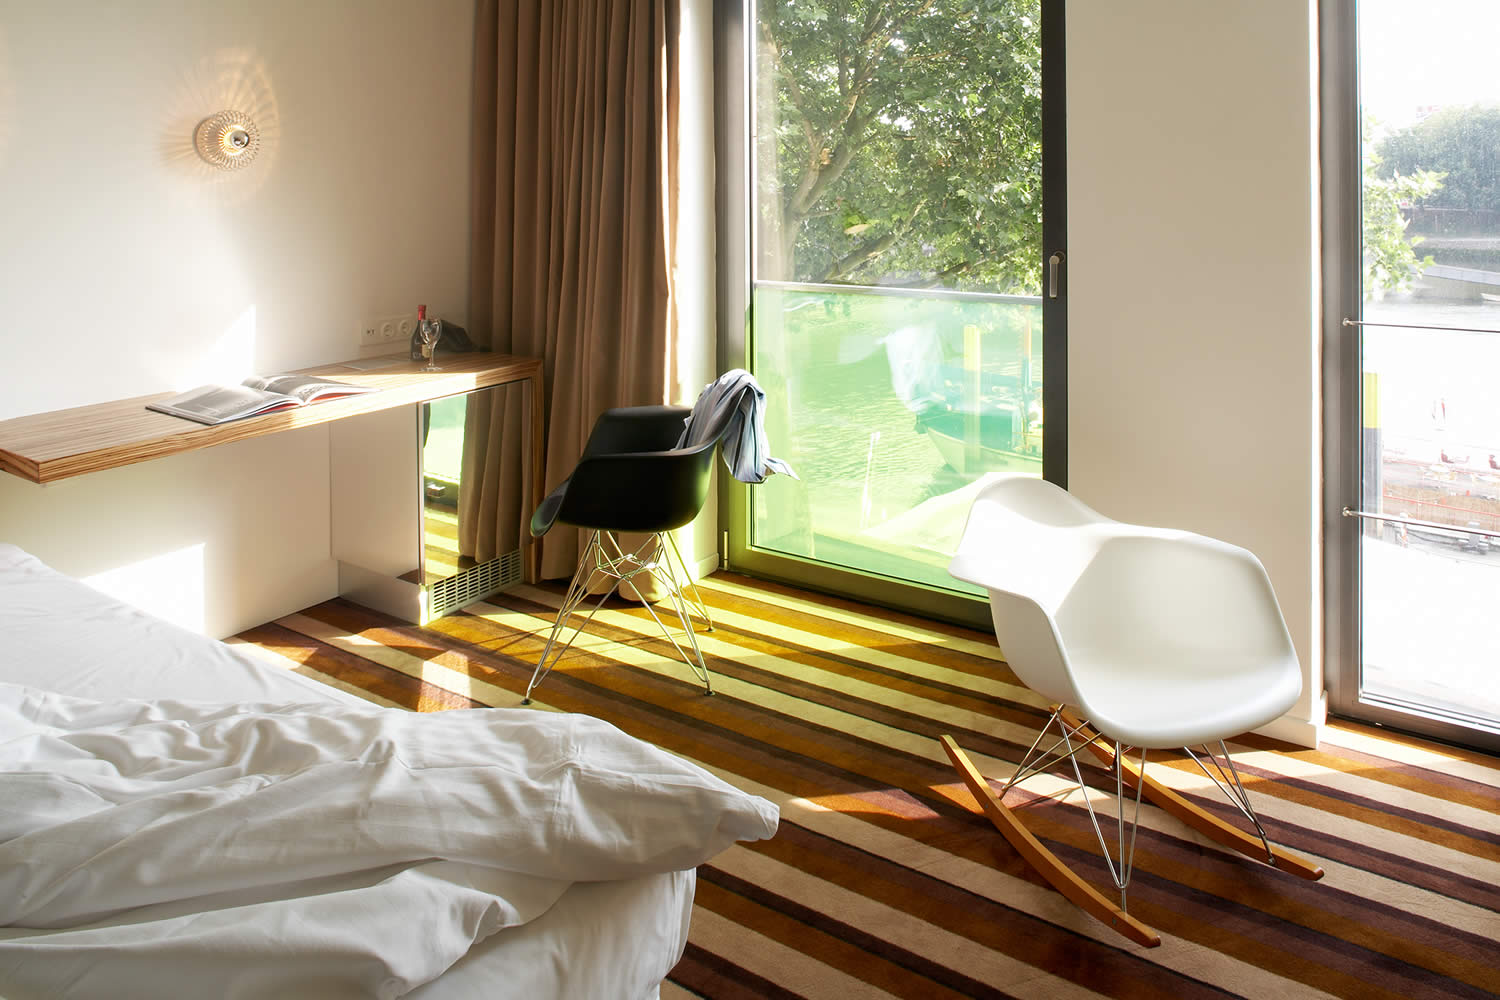 hotel berfluss bremen photography eduardo perez frankfurt 49 69 37561768. Black Bedroom Furniture Sets. Home Design Ideas